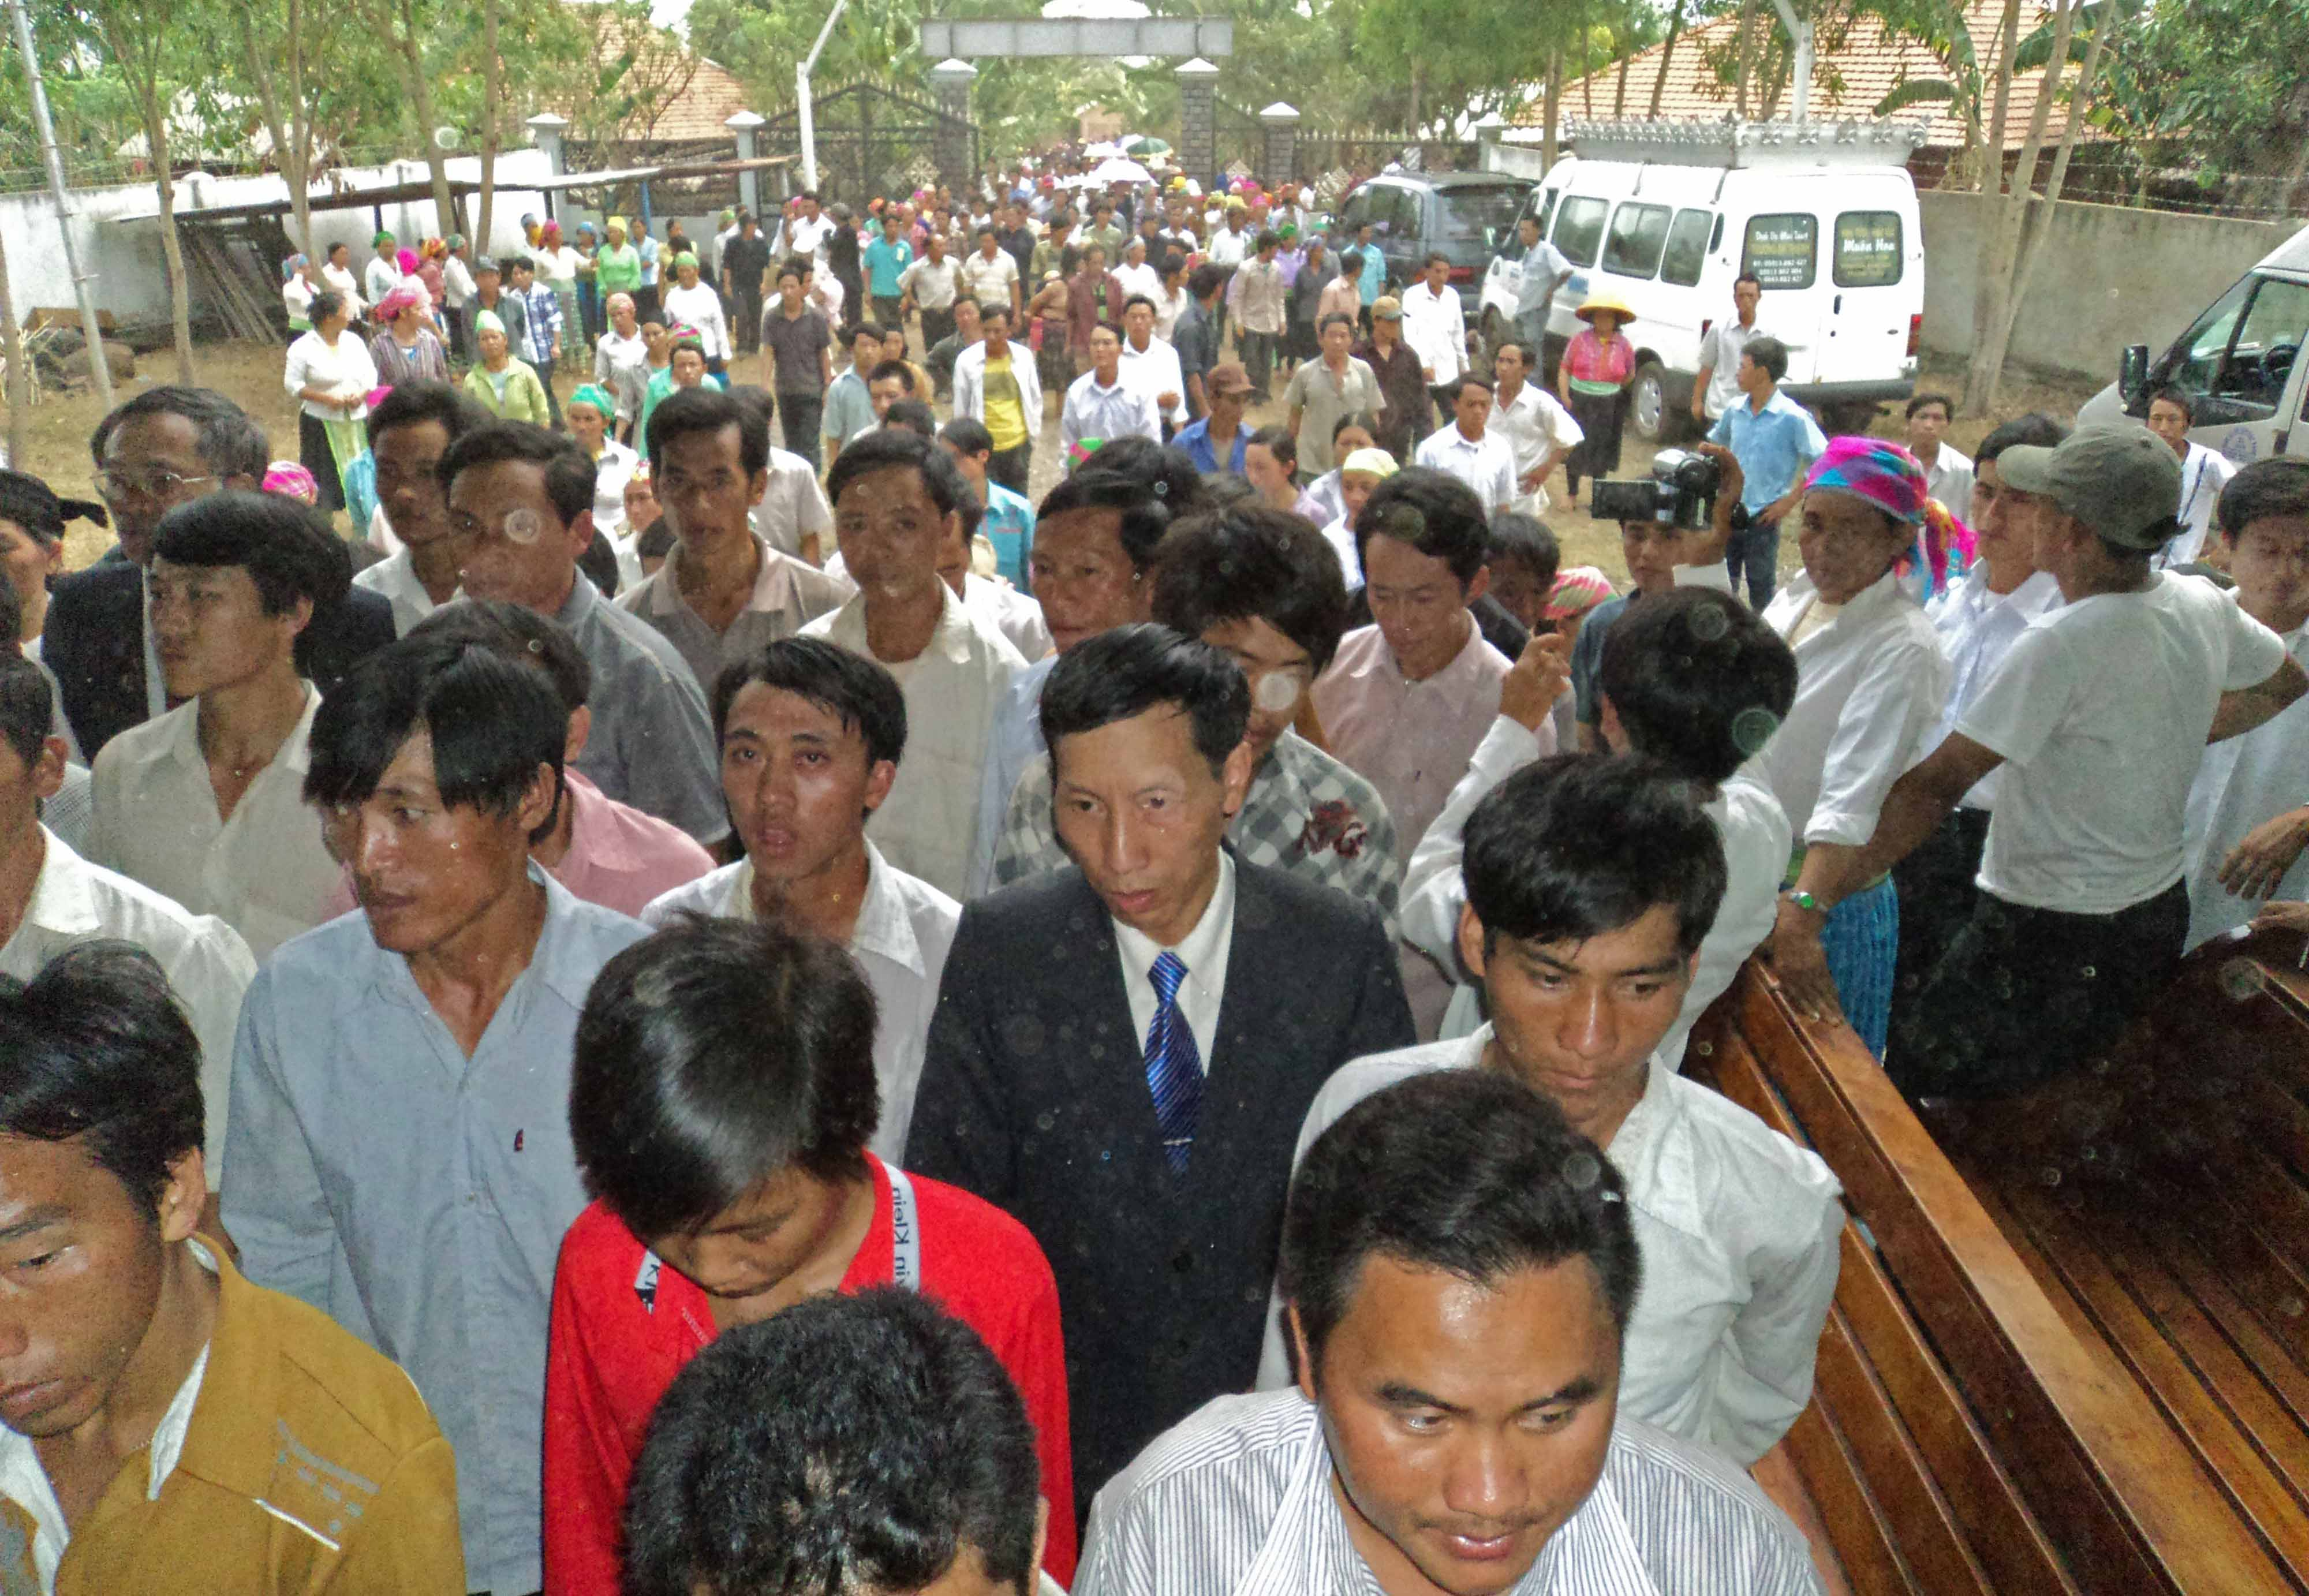 Hundreds of mourners stream into funeral service for Hoang Van Ngai.